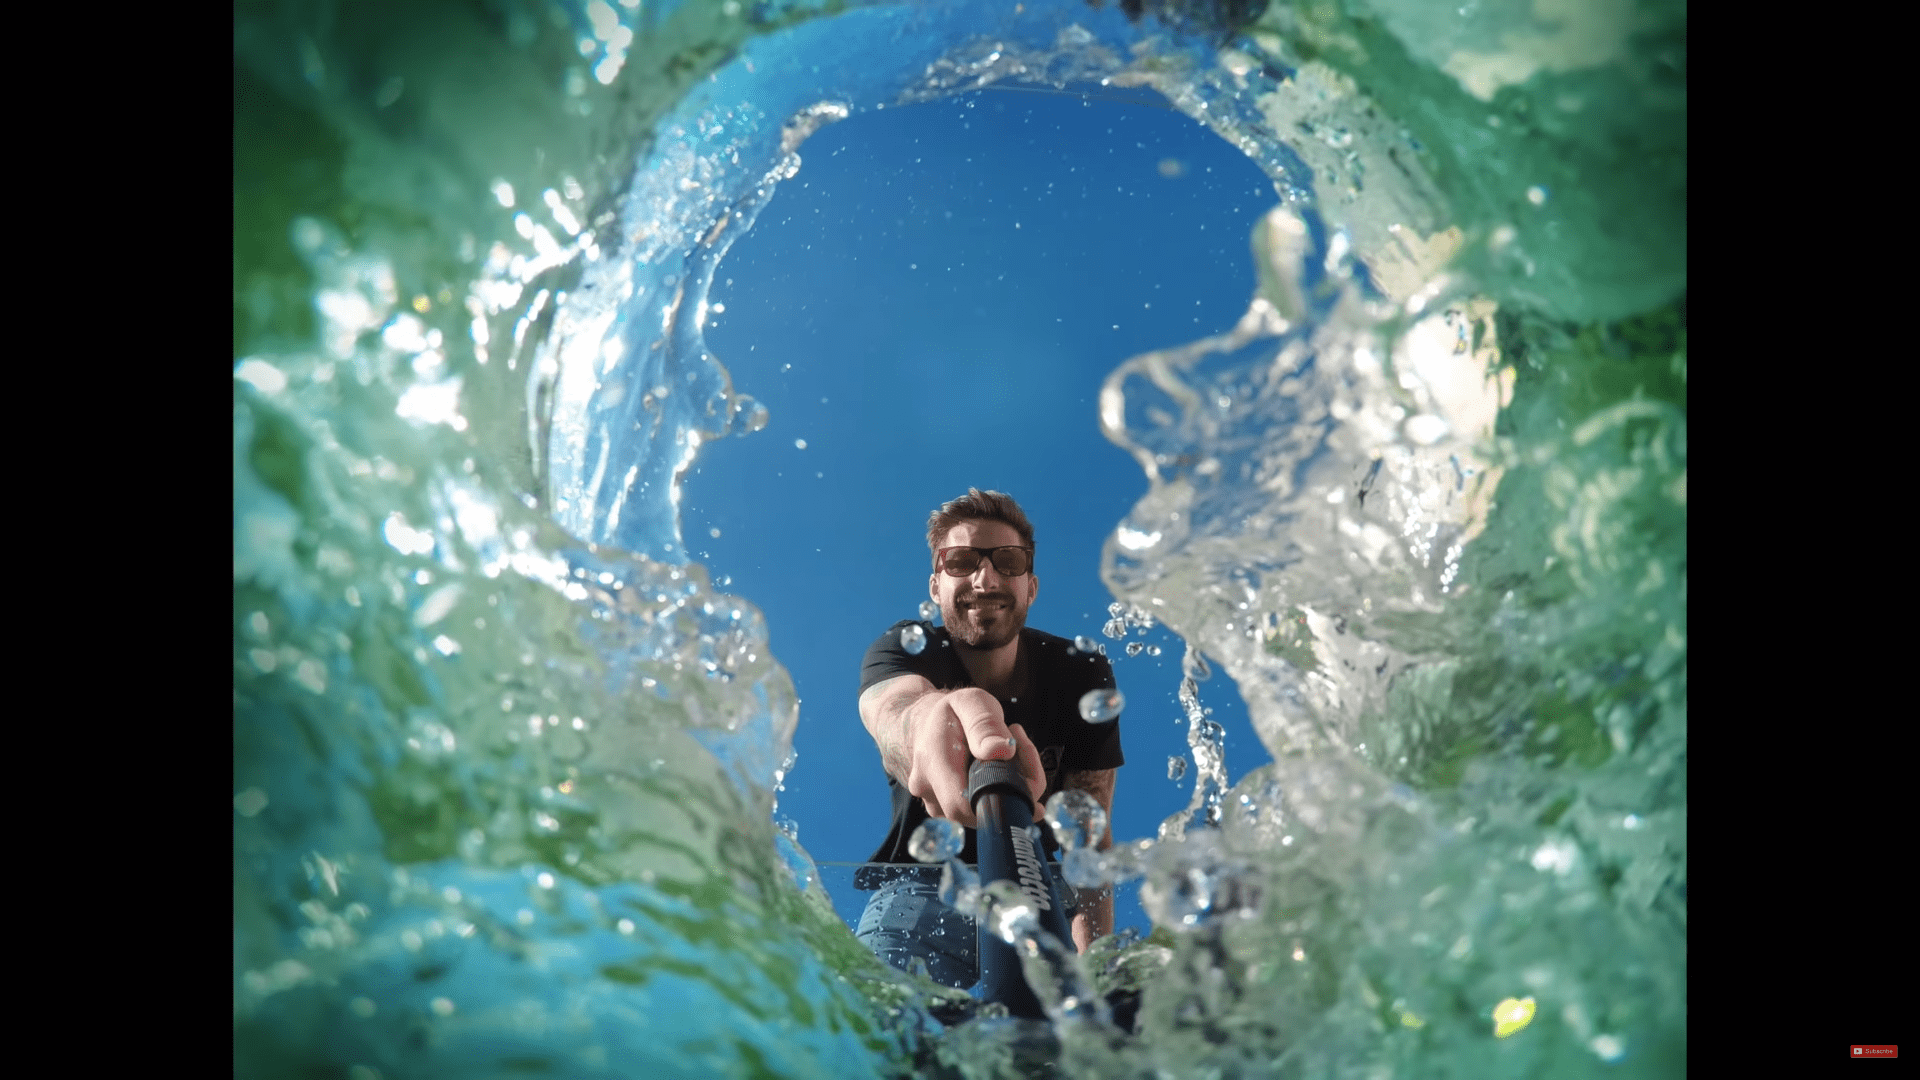 underwaterselfie min image